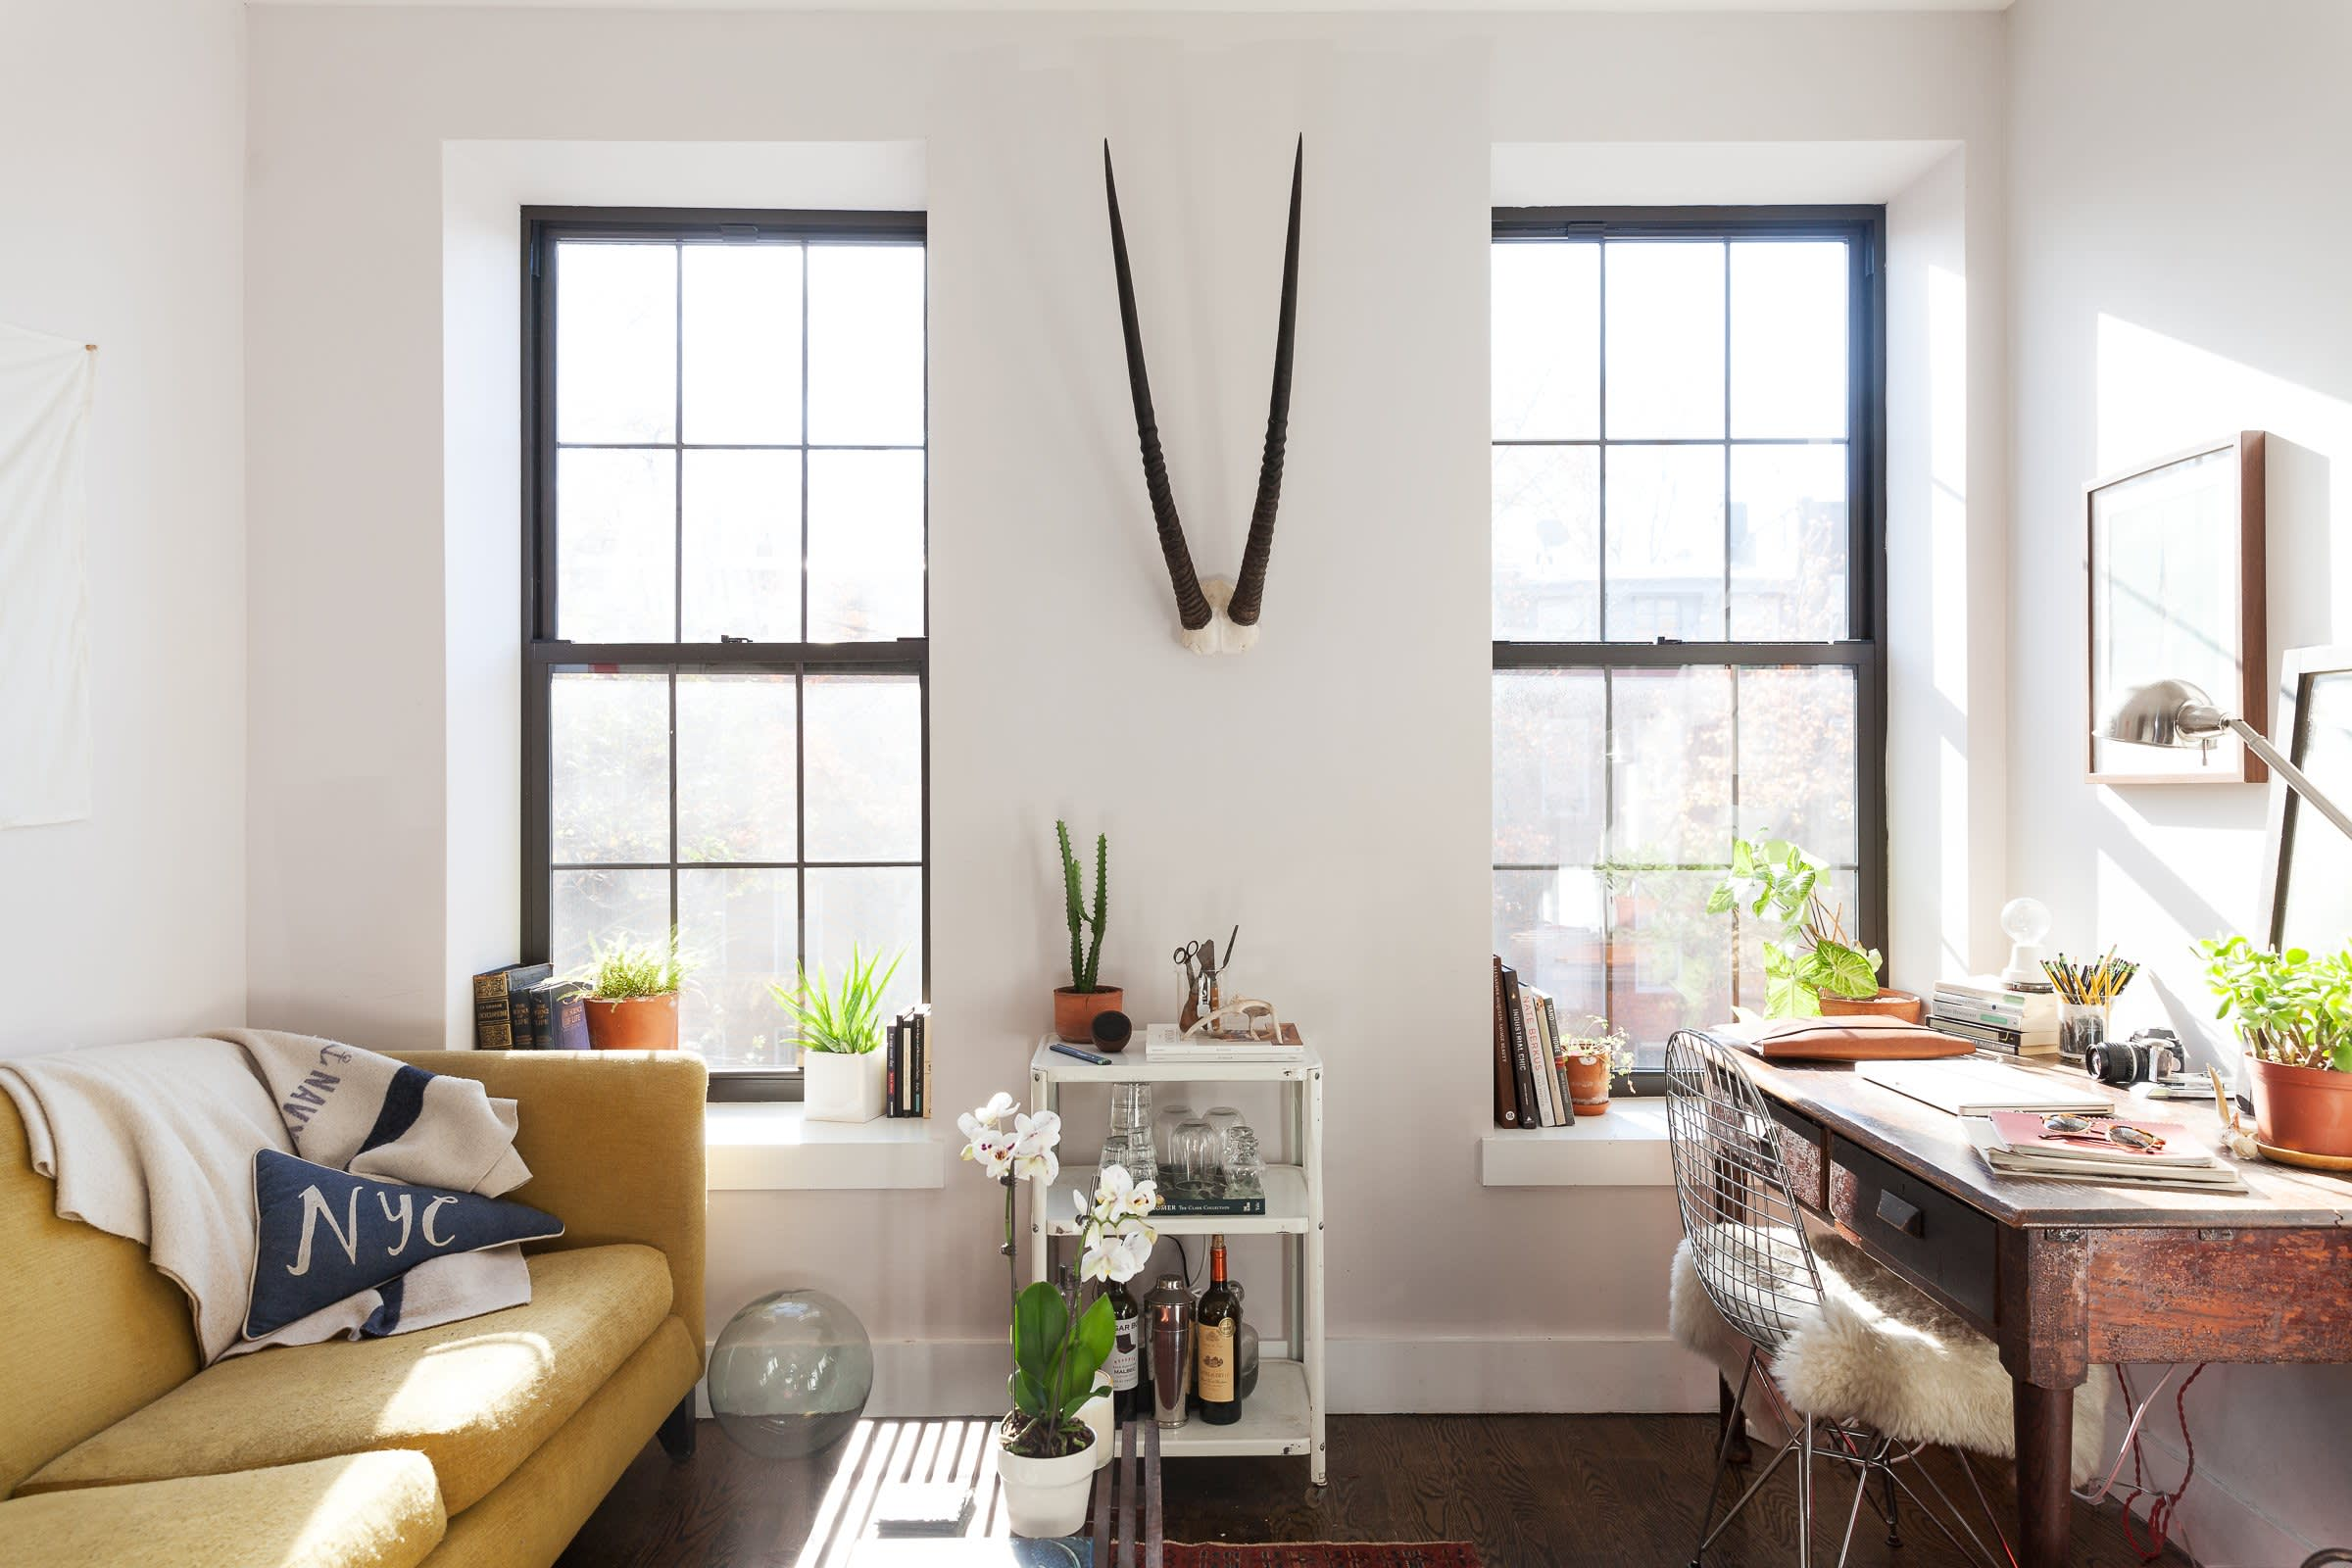 An Industrial Modern Apartment In Brooklyn (Image Credit: Lauren Kolyn)